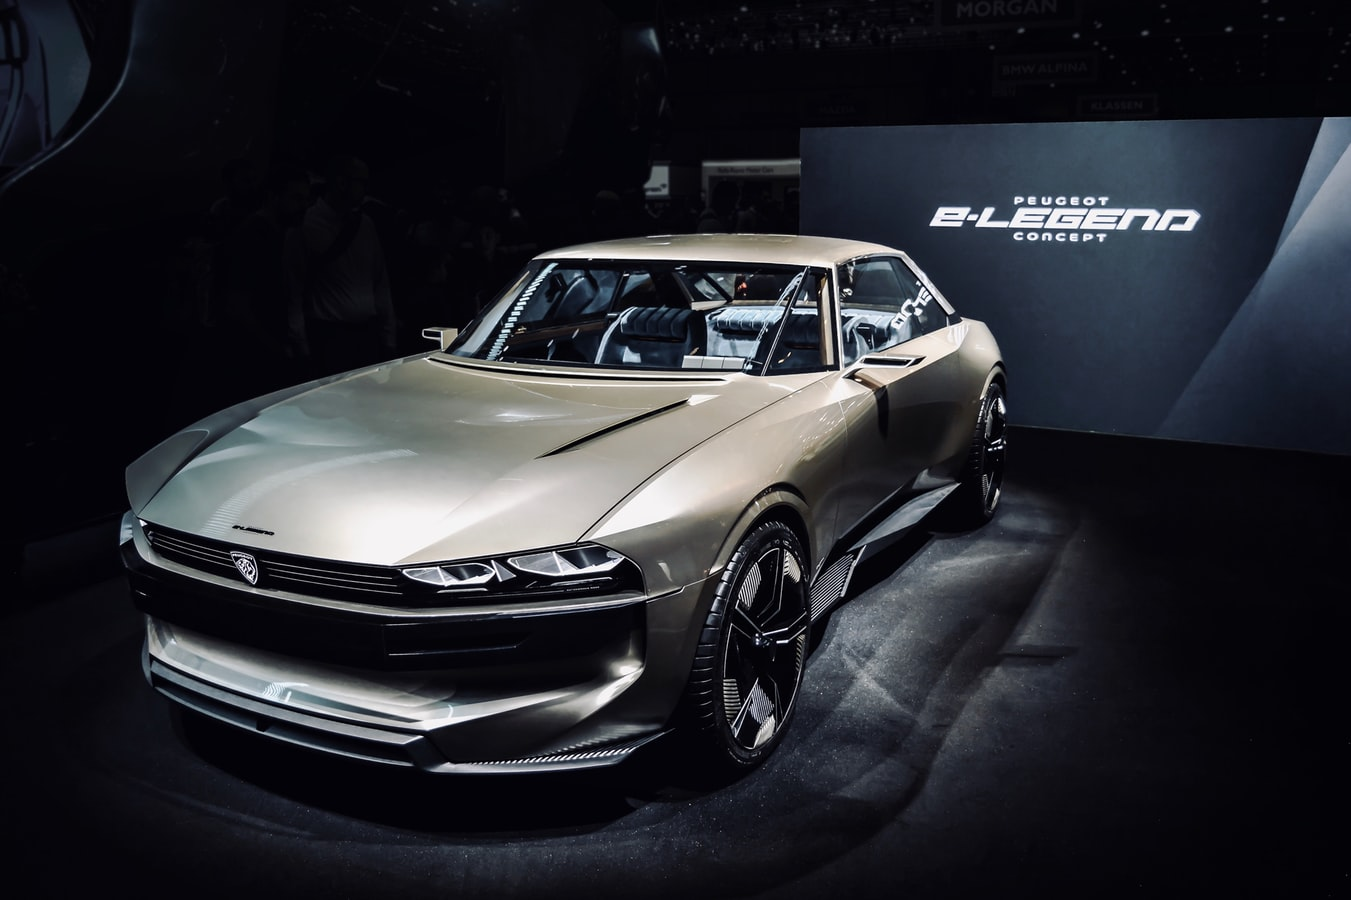 Peugeot e-Legend Concept Car